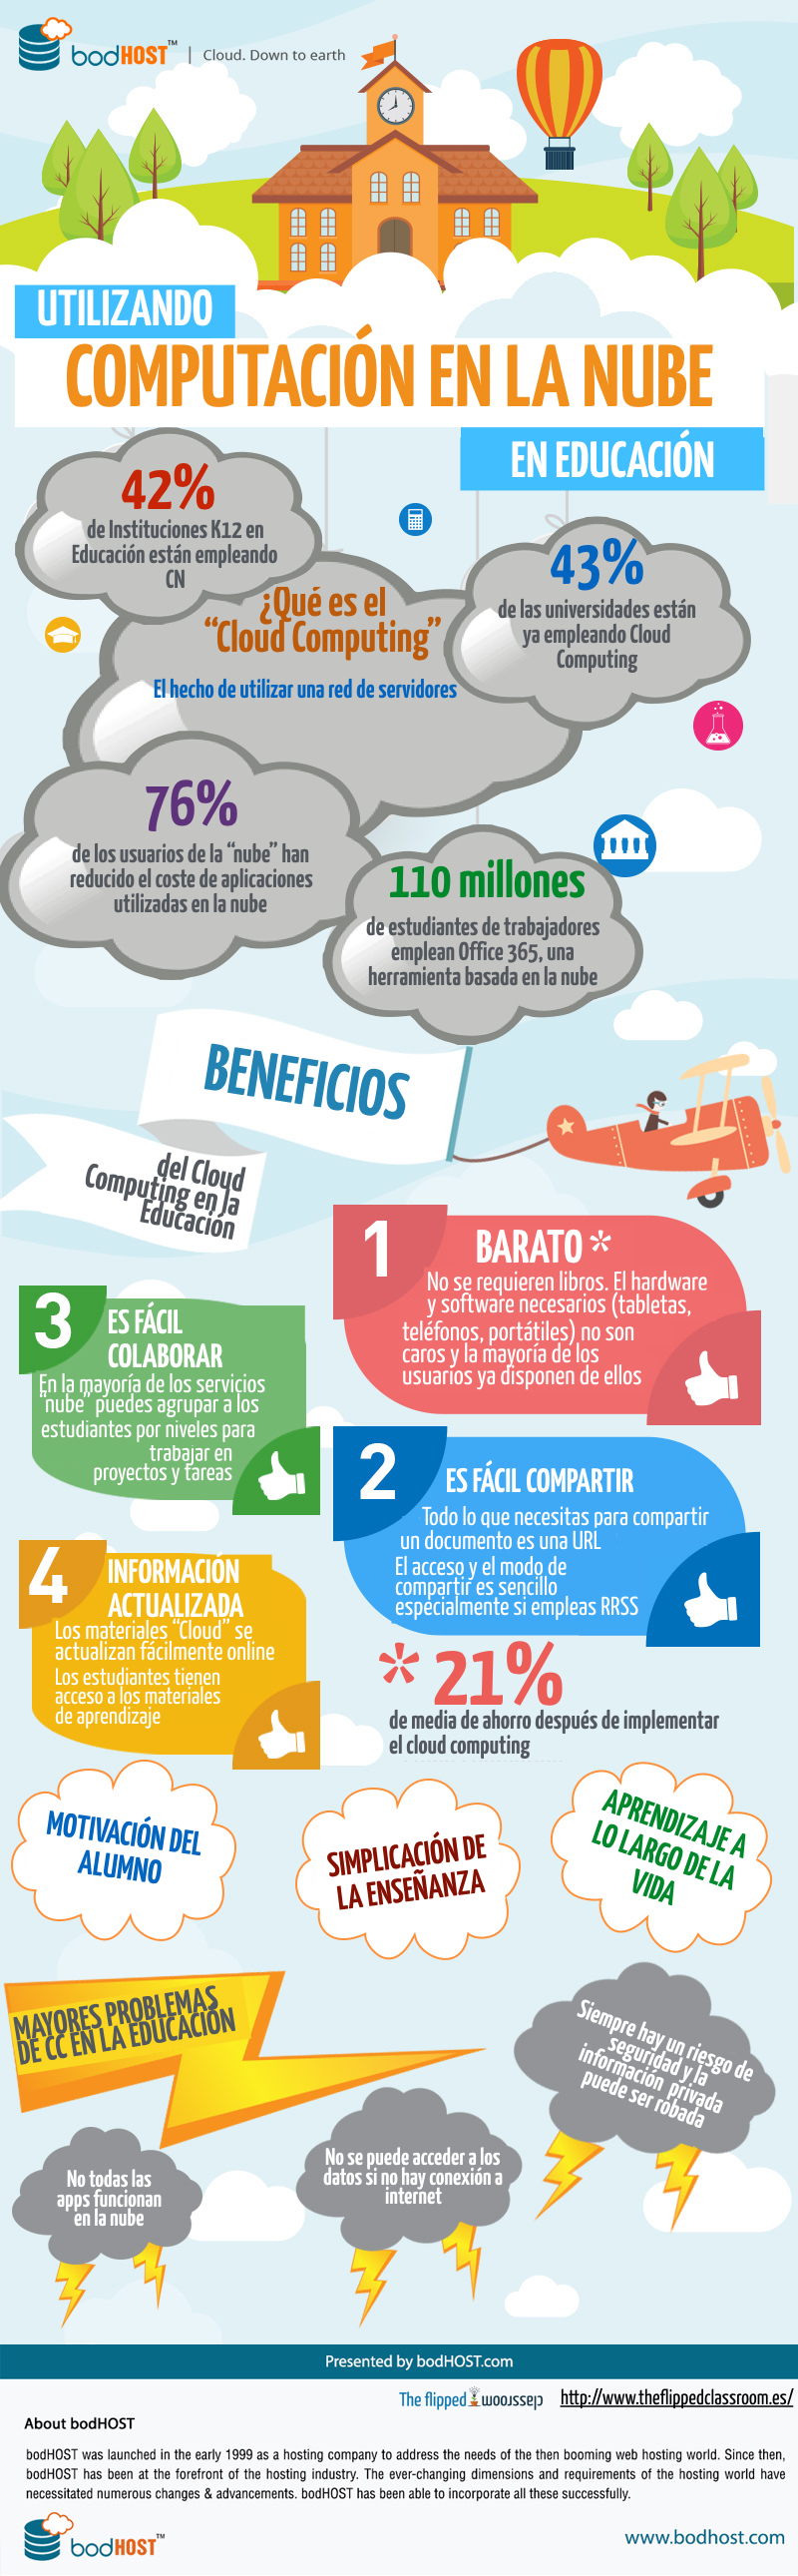 Cloud Computing en Educación